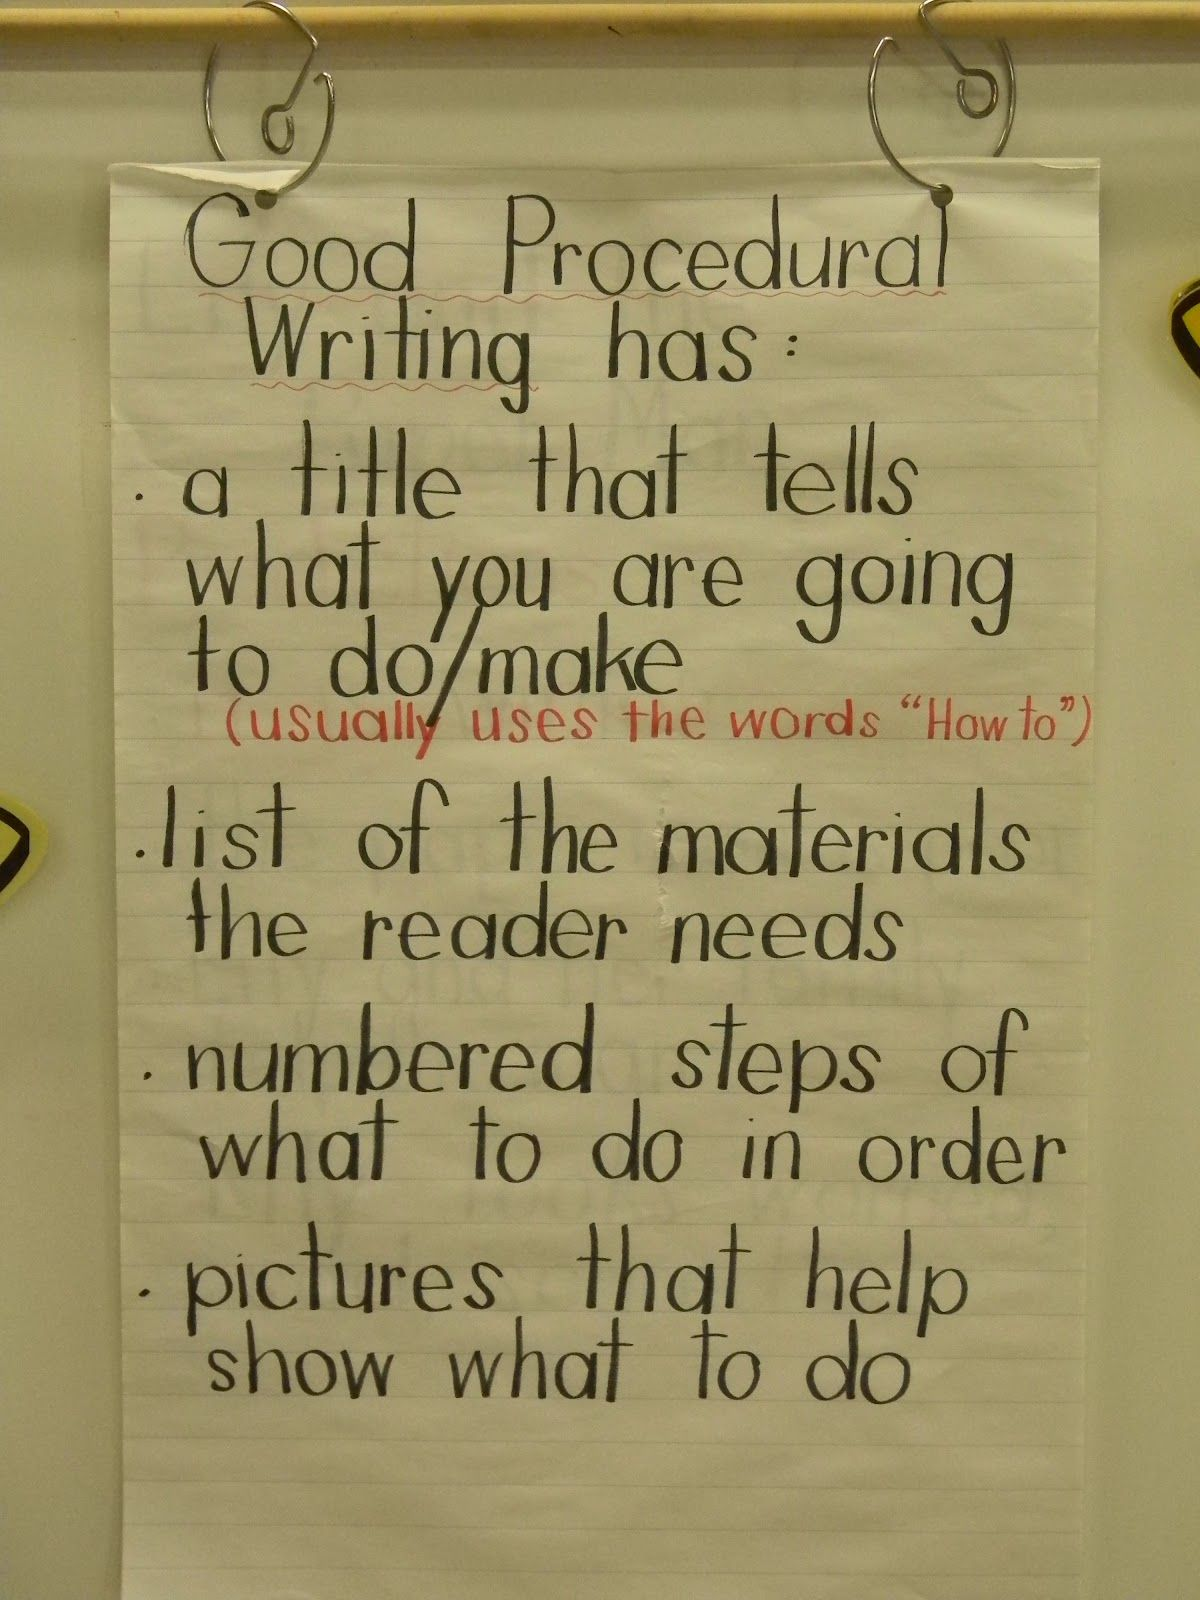 Procedural Writing Examples